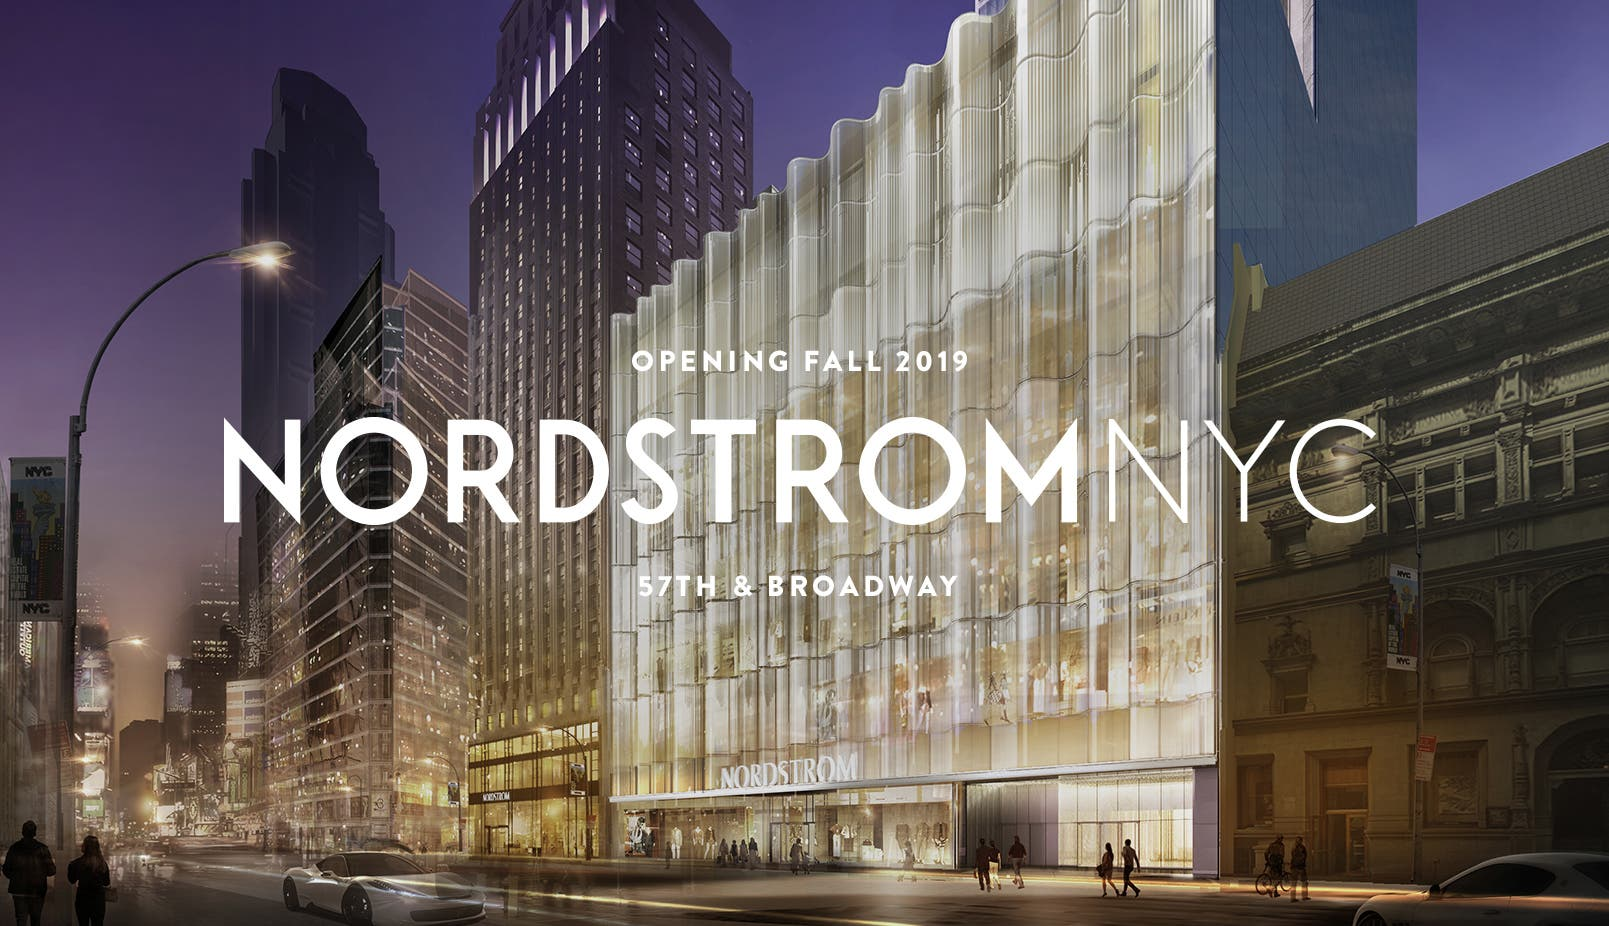 Nordstrom NYC: opening Fall 2019.